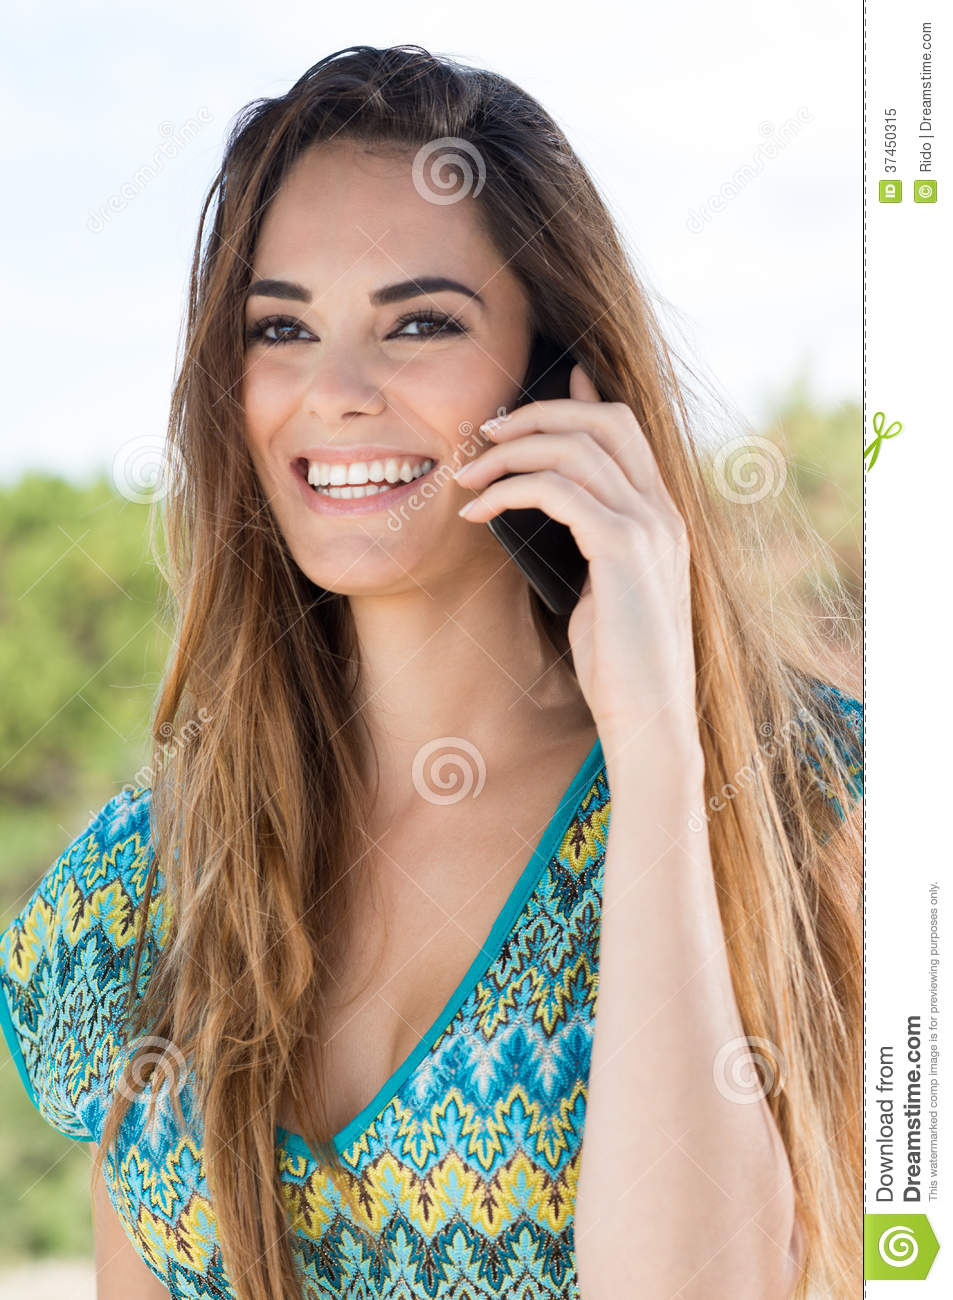 Hot girl cell phone love ride